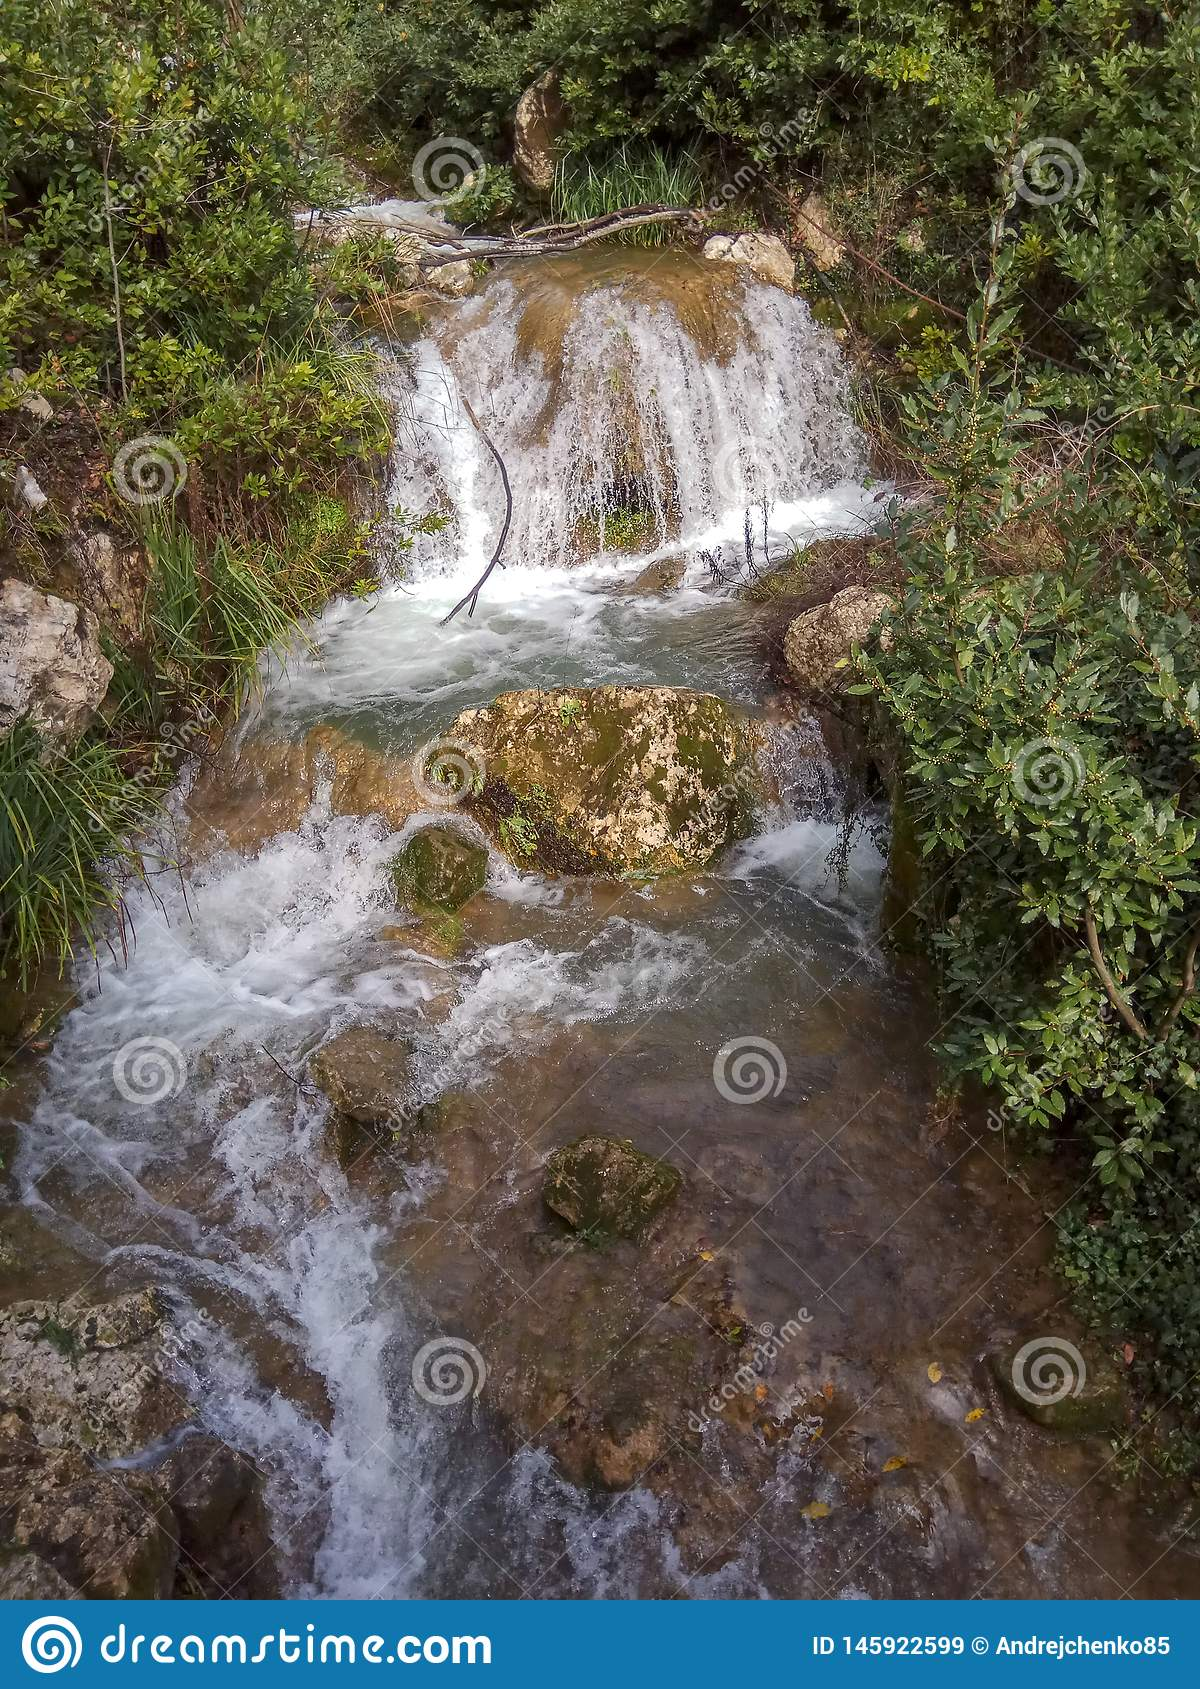 Waterfall cascades down the mountain side over moss covered rocks amid the trees and bushes